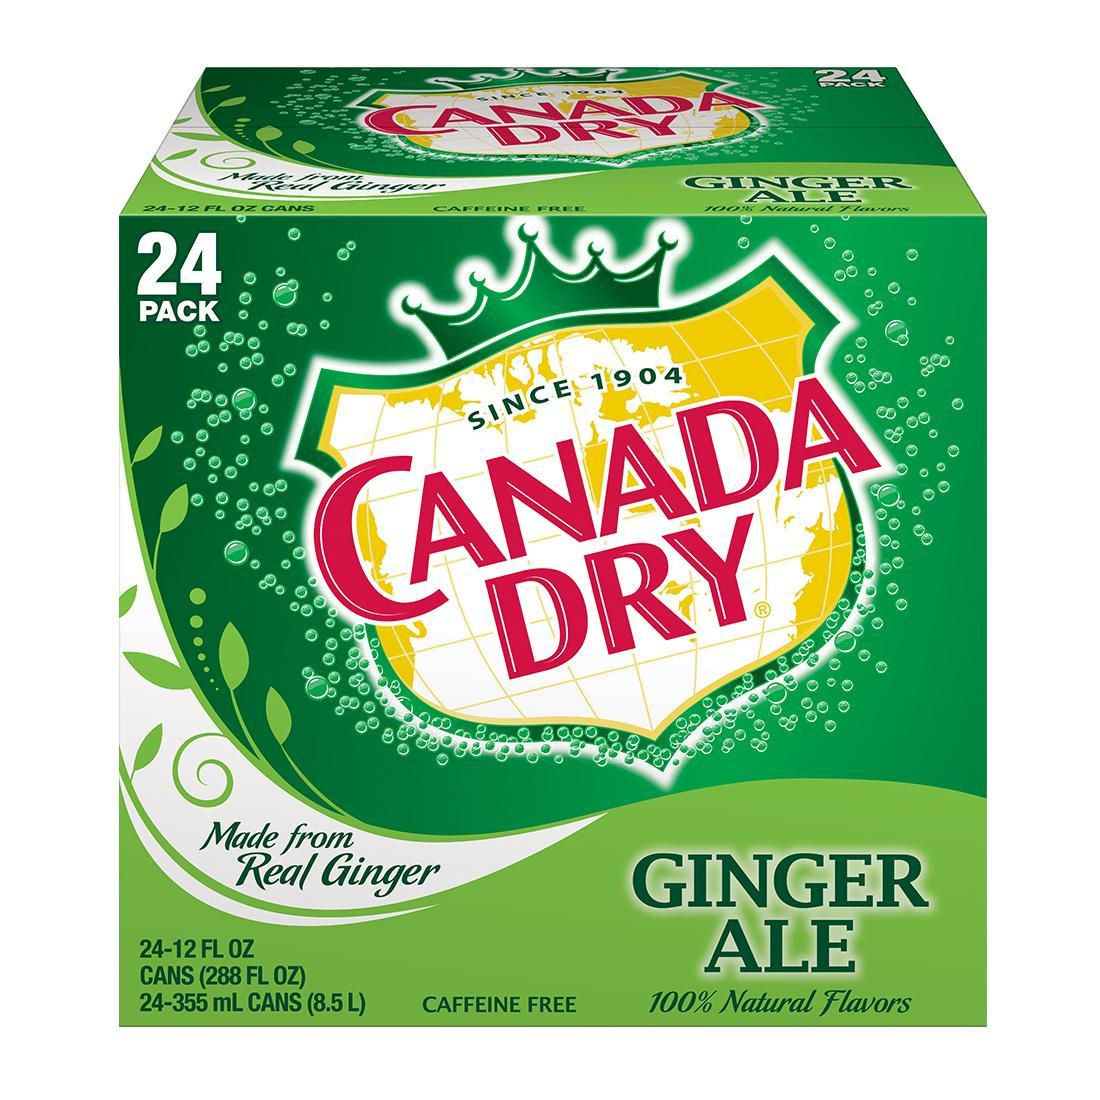 stl>Ginger Ale - 24 Pack - Canada Dry